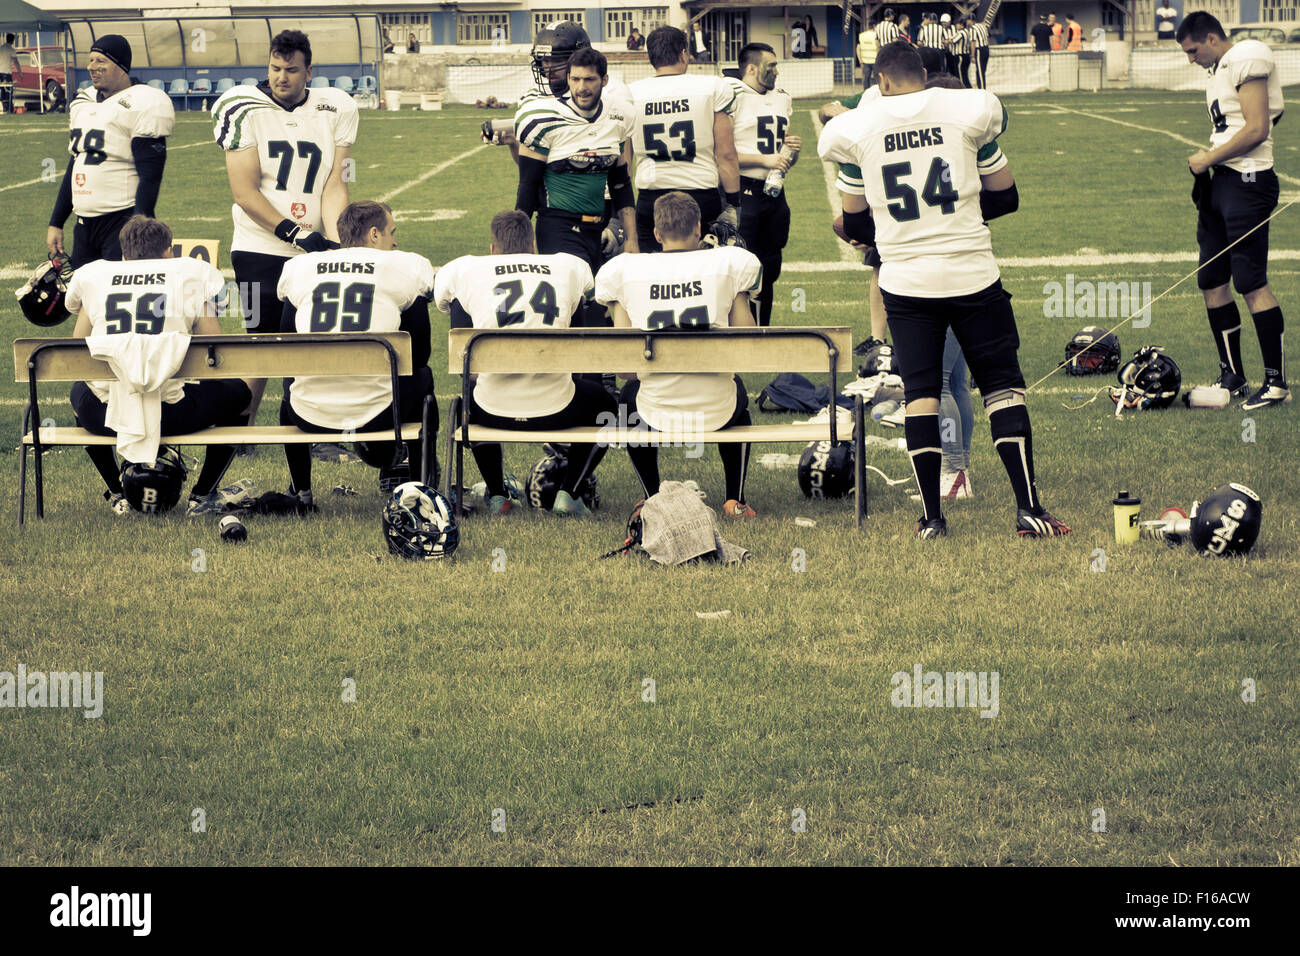 team of American football players on the sideline - Stock Image